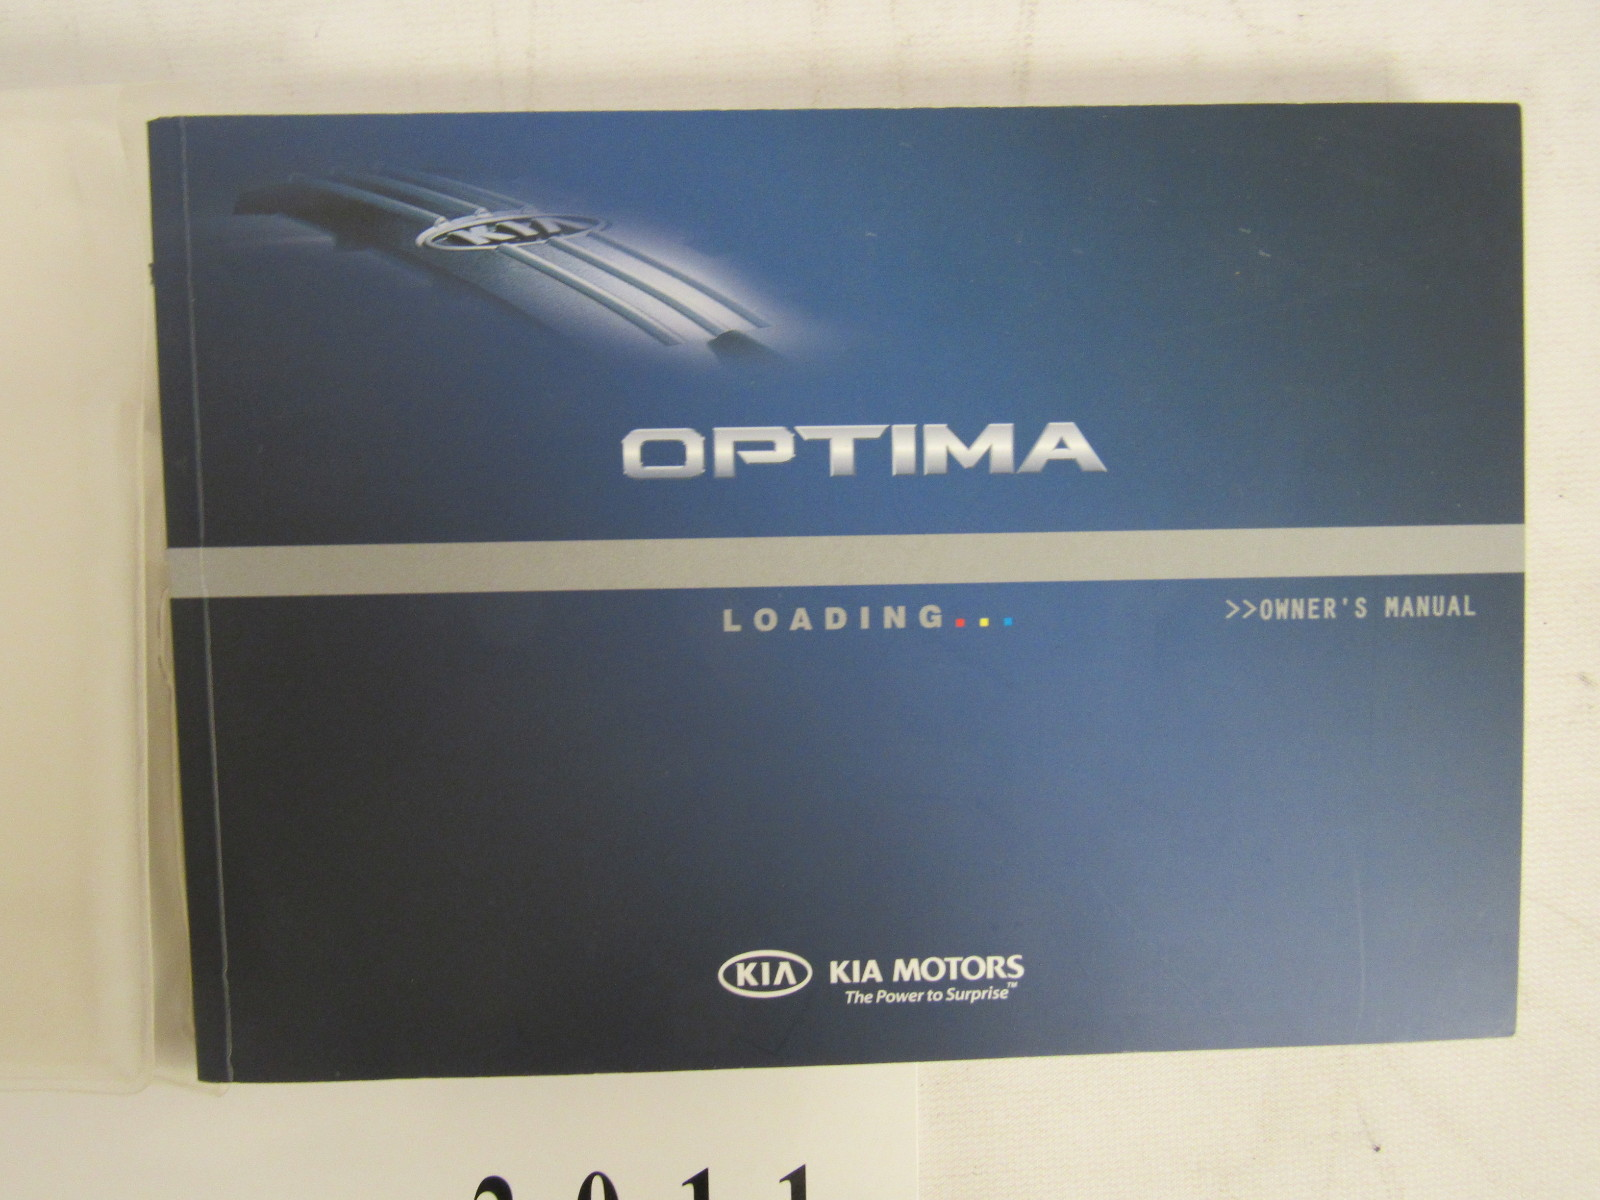 2011 kia optima owners manual book bashful yak rh bashfulyak com 2011 kia optima repair manual 2011 kia optima service manual